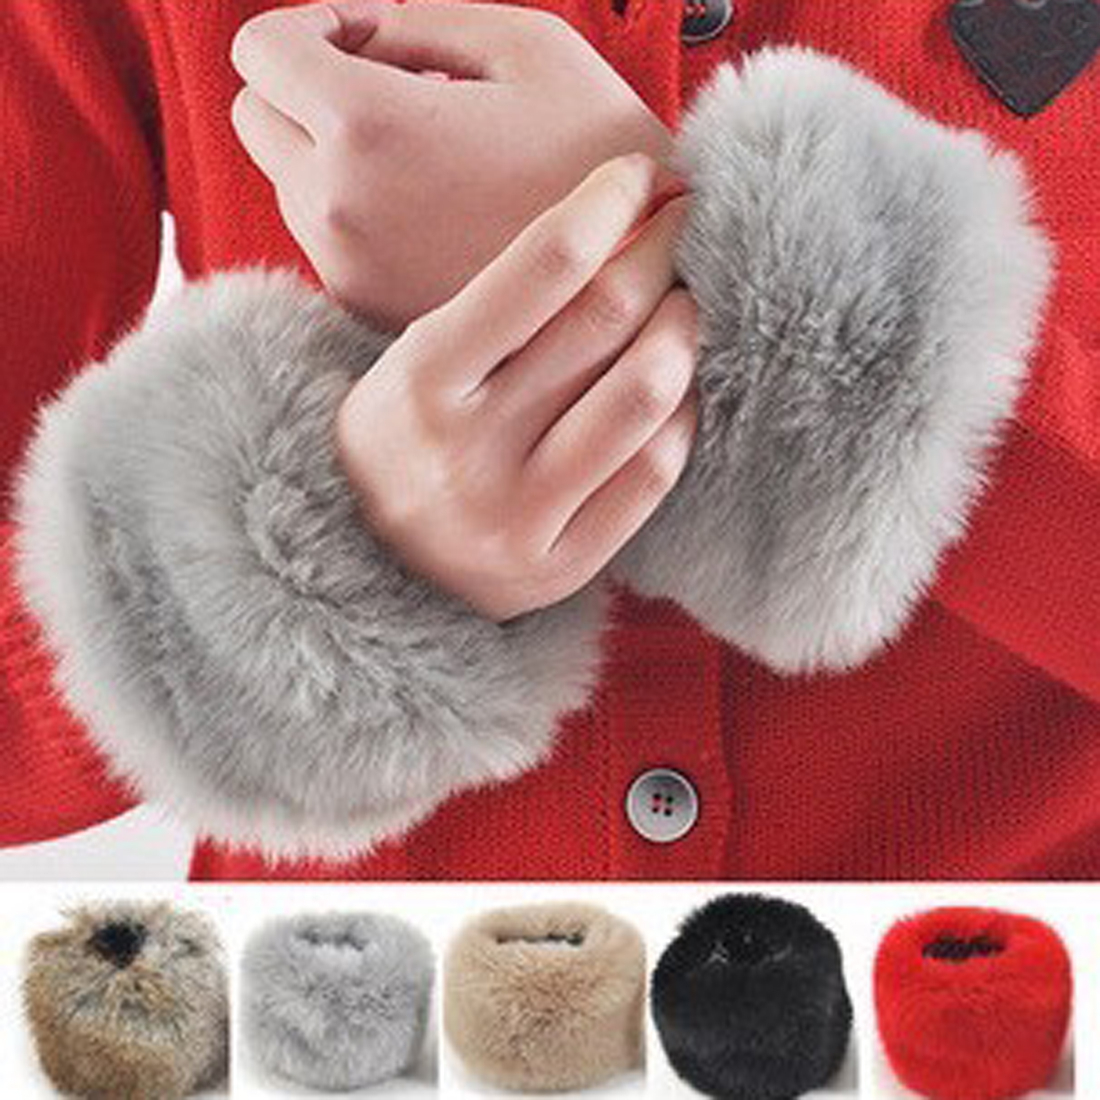 New Arrive Winter Warm Women Arm Warmer Faux Fur Soft Elastic Wrist Slap On Cuffs Arm Warmer Plush Thicken Accessories Gray Gray